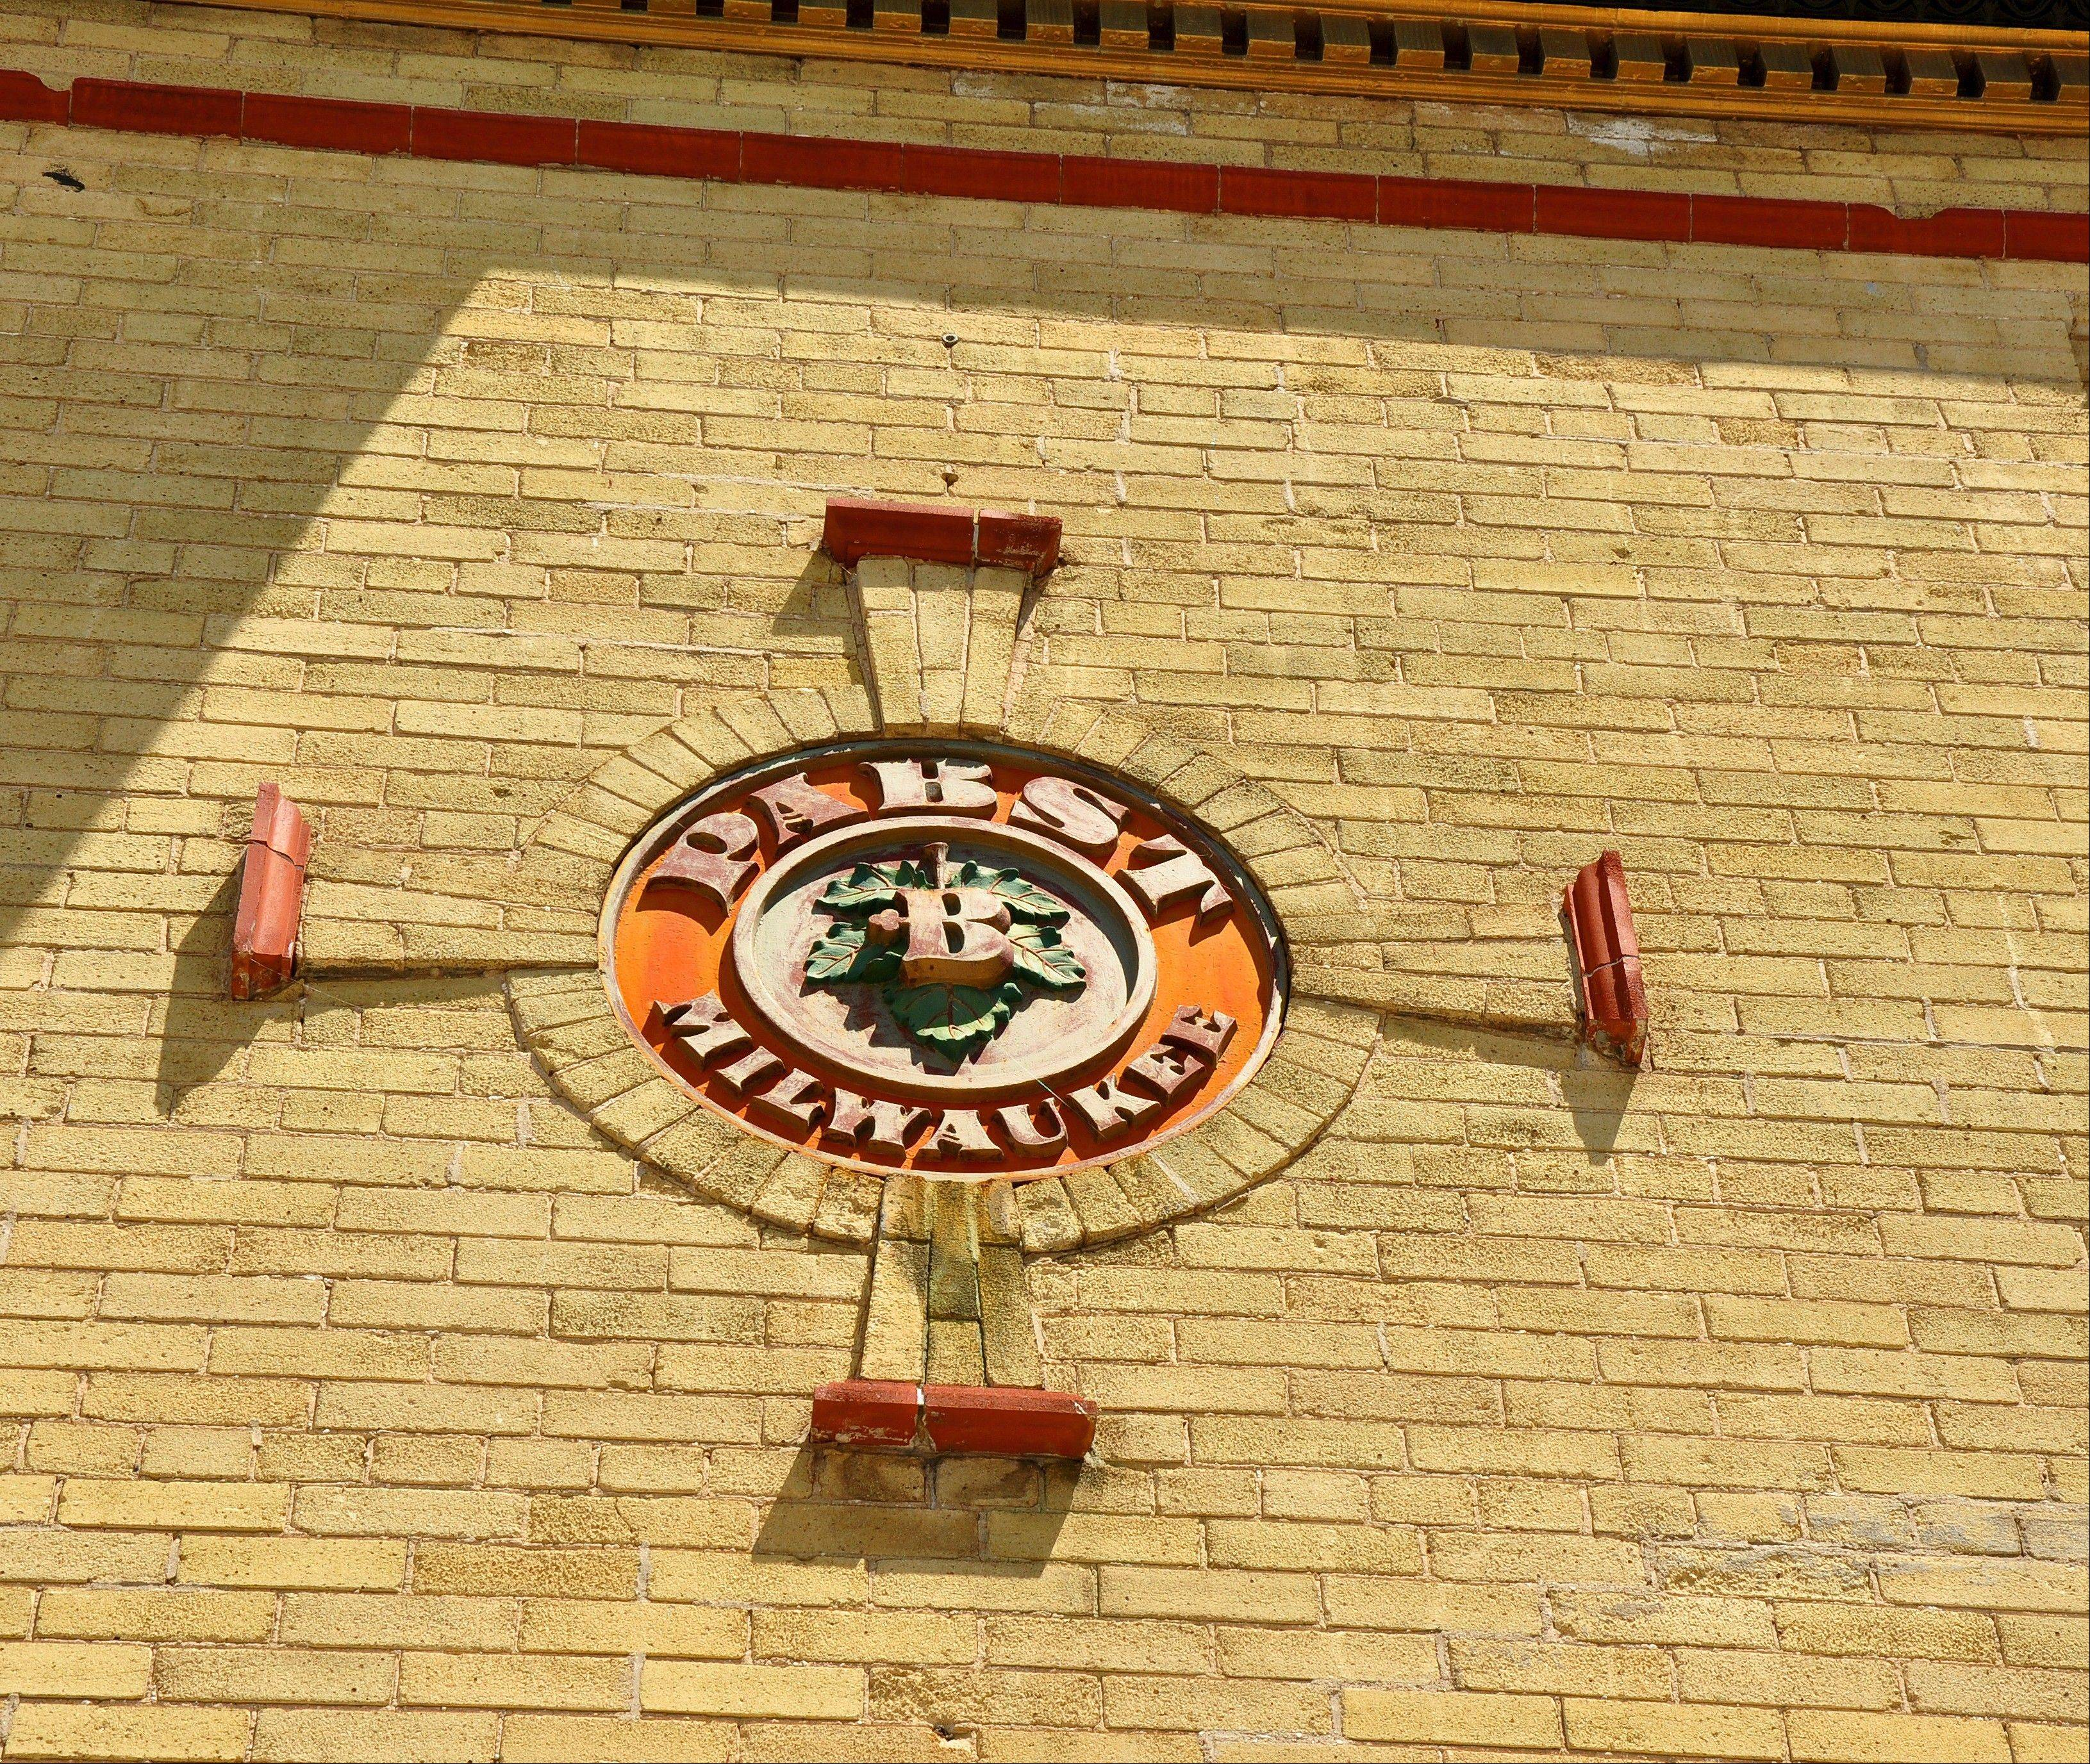 The Pabst Brewery put its emblem on its tied house taverns, including what is now The Irish Pub in Milwaukee.